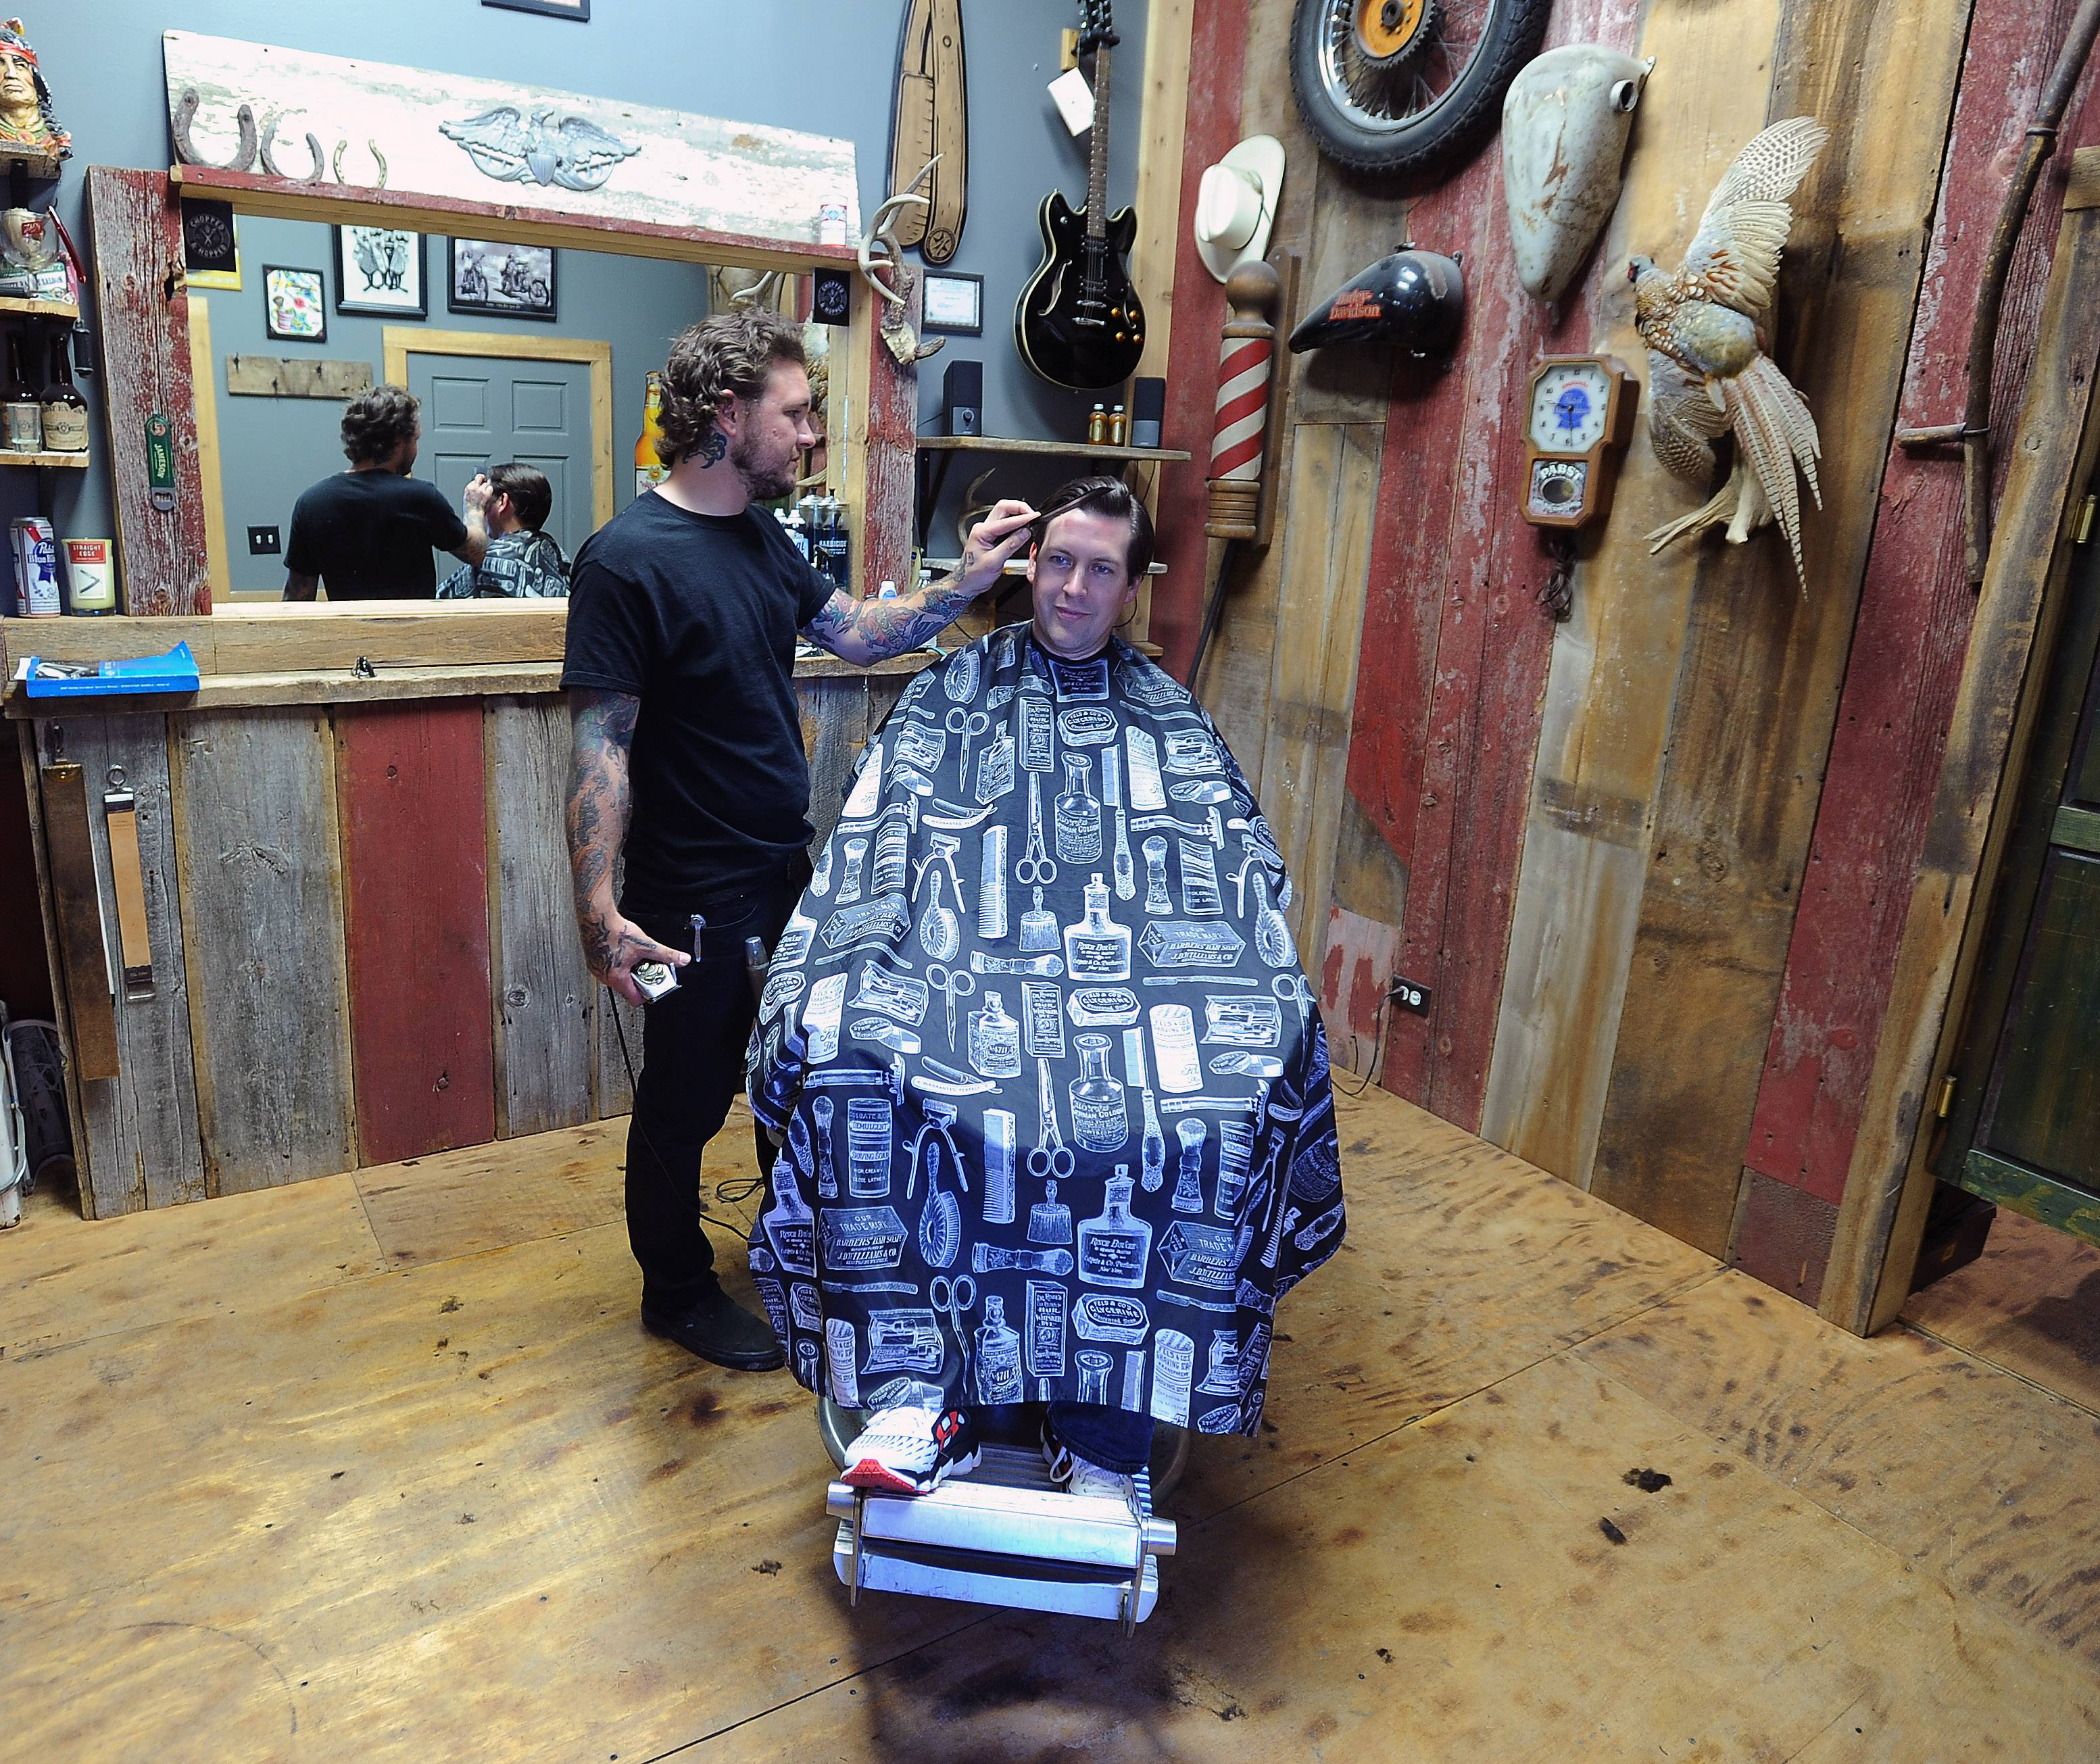 Barrington's Grassroots is more than a mere bar: Barber Tyler Rose gives Alan Weir of Lake Zurich a trim in the backroom.